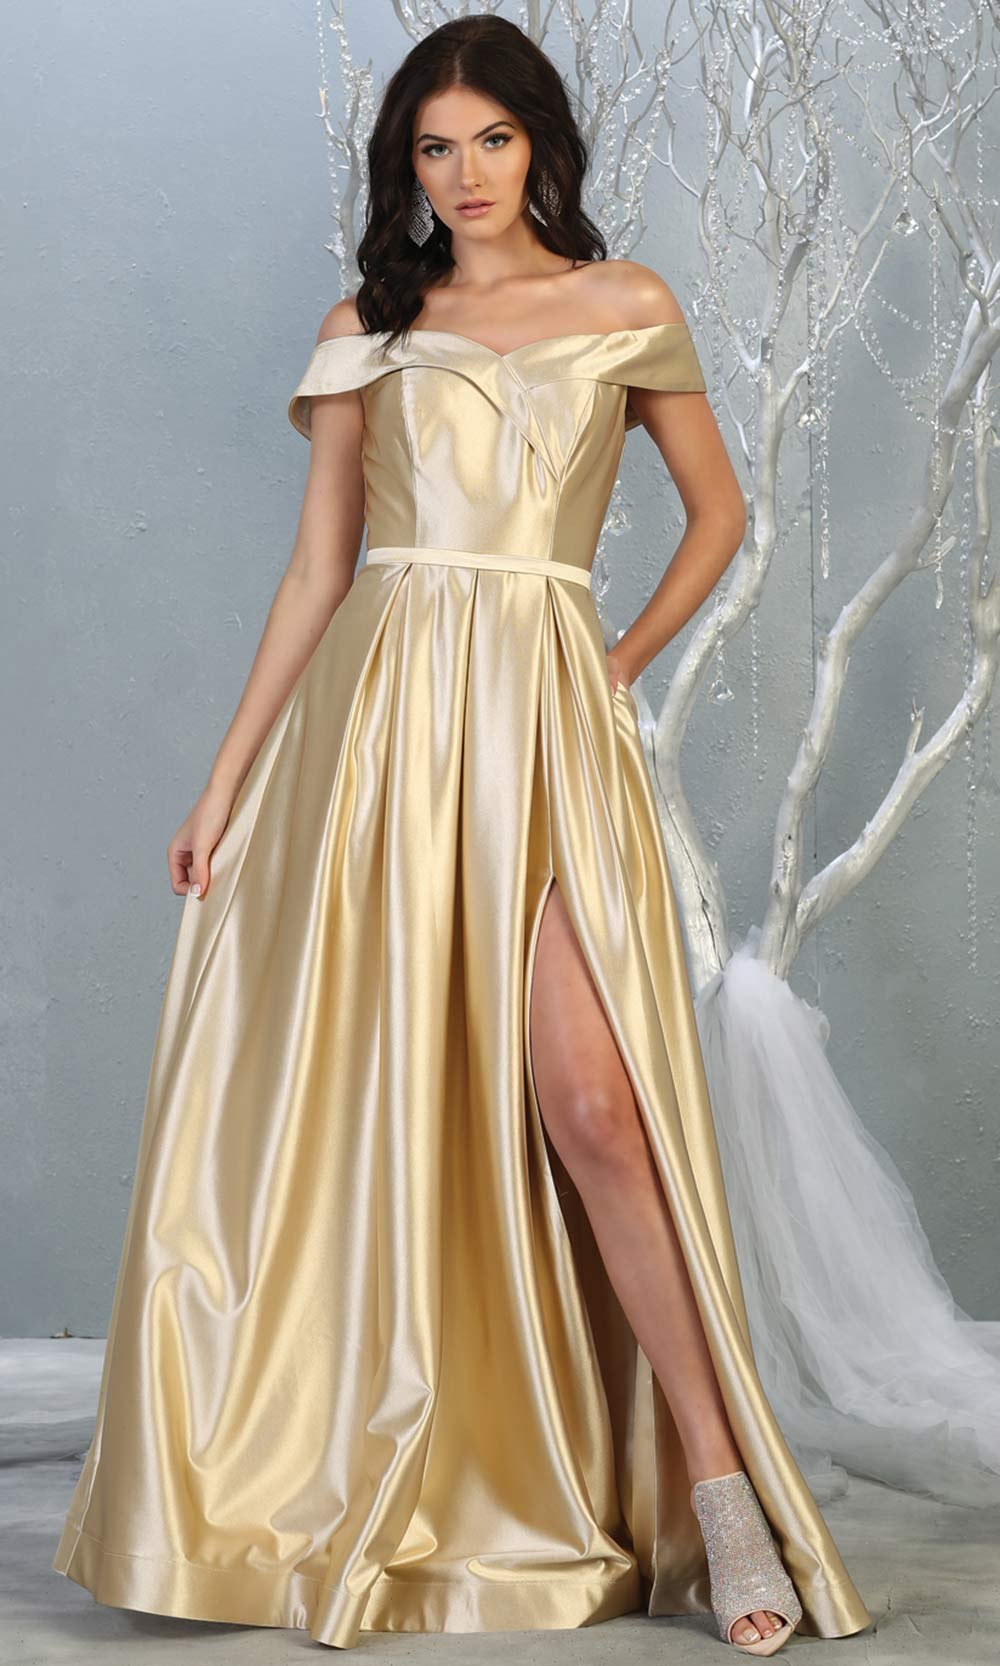 Mayqueen MQ 1781 long champagne off shoulder evening flowy dress w/ high slit. Full length light gold satin gown is perfect for  enagagement/e-shoot dress, formal wedding guest, indowestern gown, evening party dress, prom, bridesmaid. Plus sizes avail.jpg